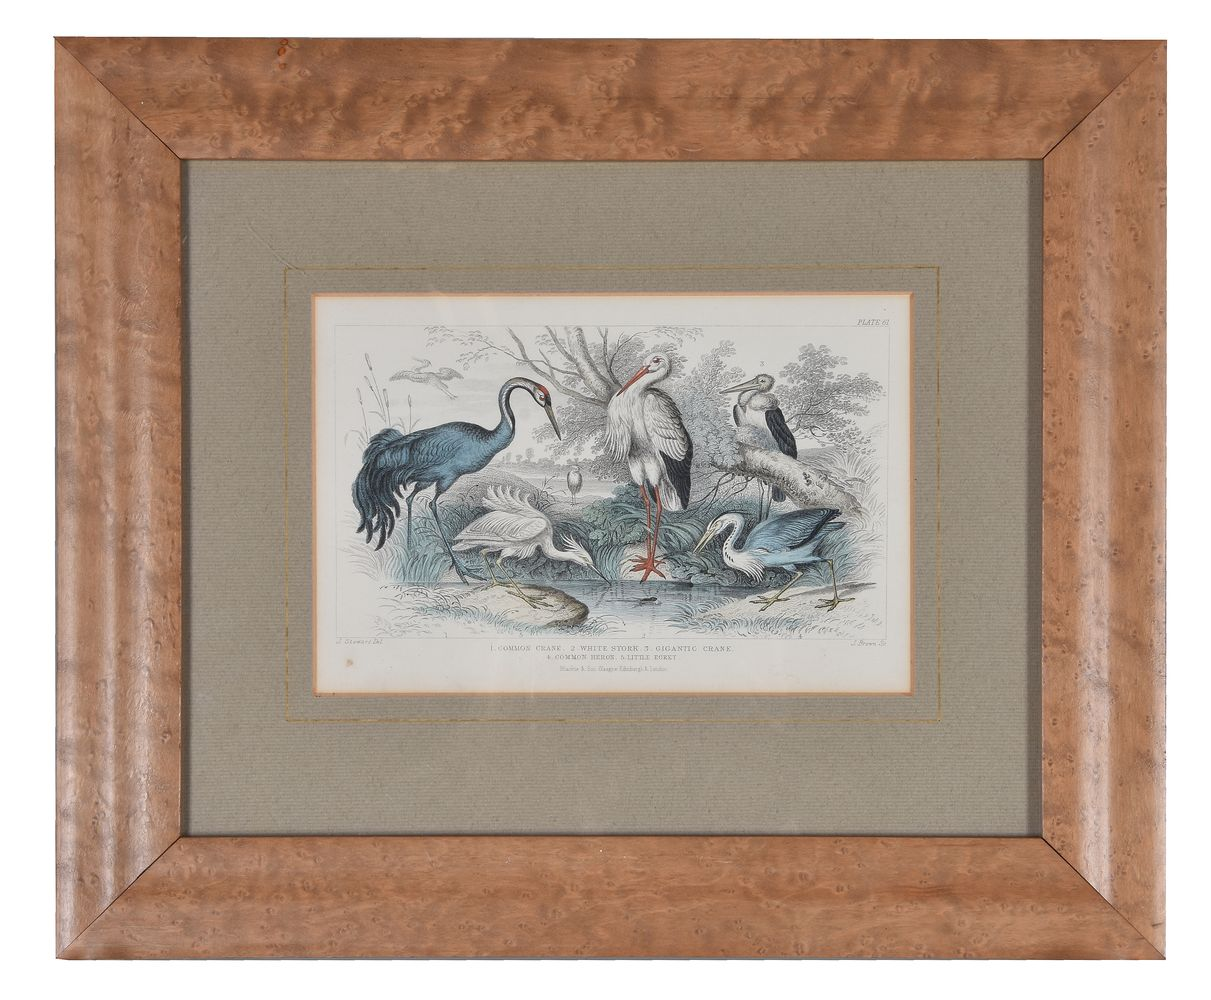 Lot 223 - A set of four prints after design by James Stewart and engraving by James Brown for James Stewart's